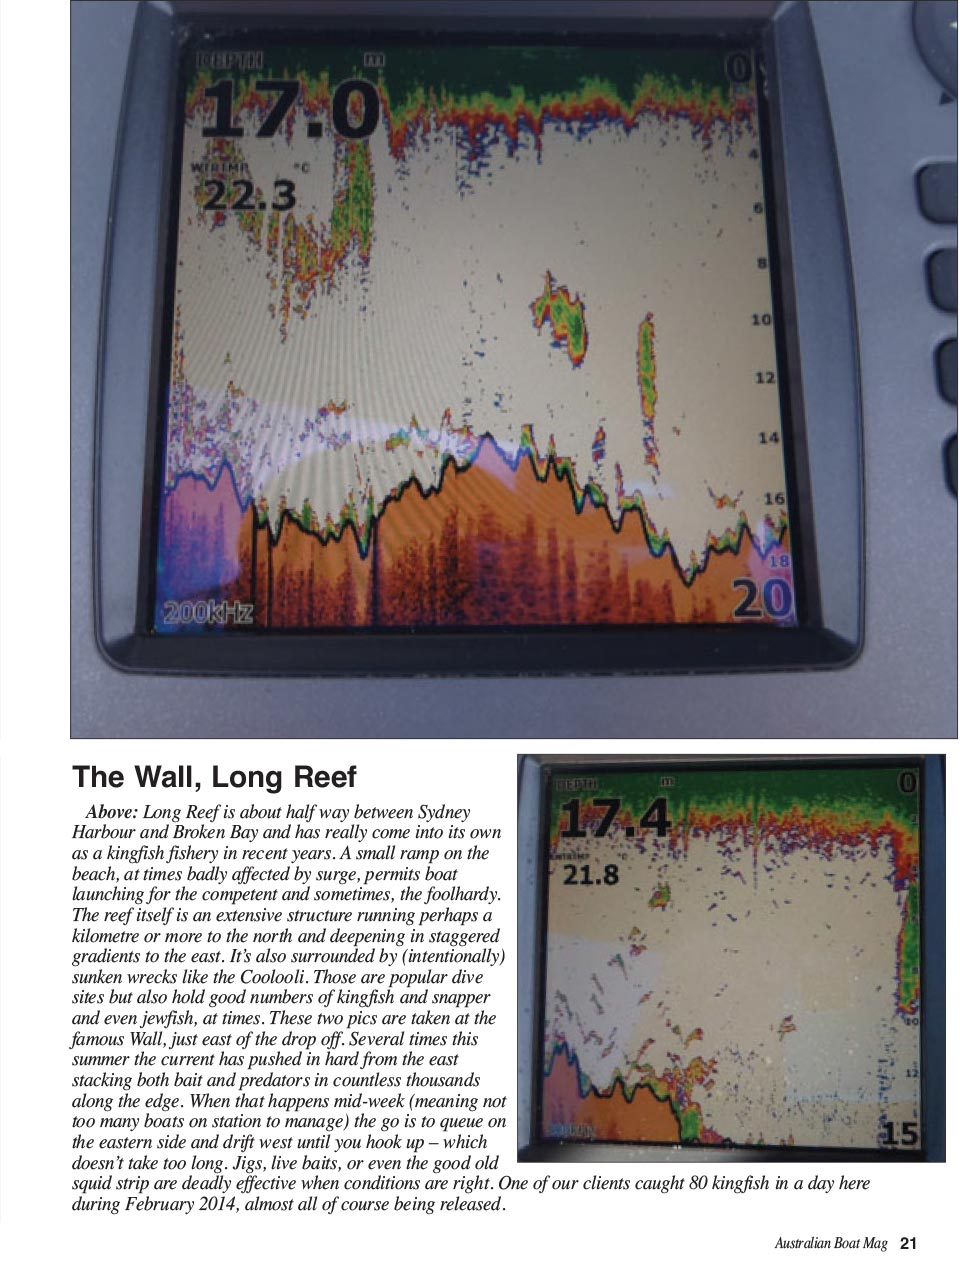 Where the reef ends shown on a Lowrance depth sounder